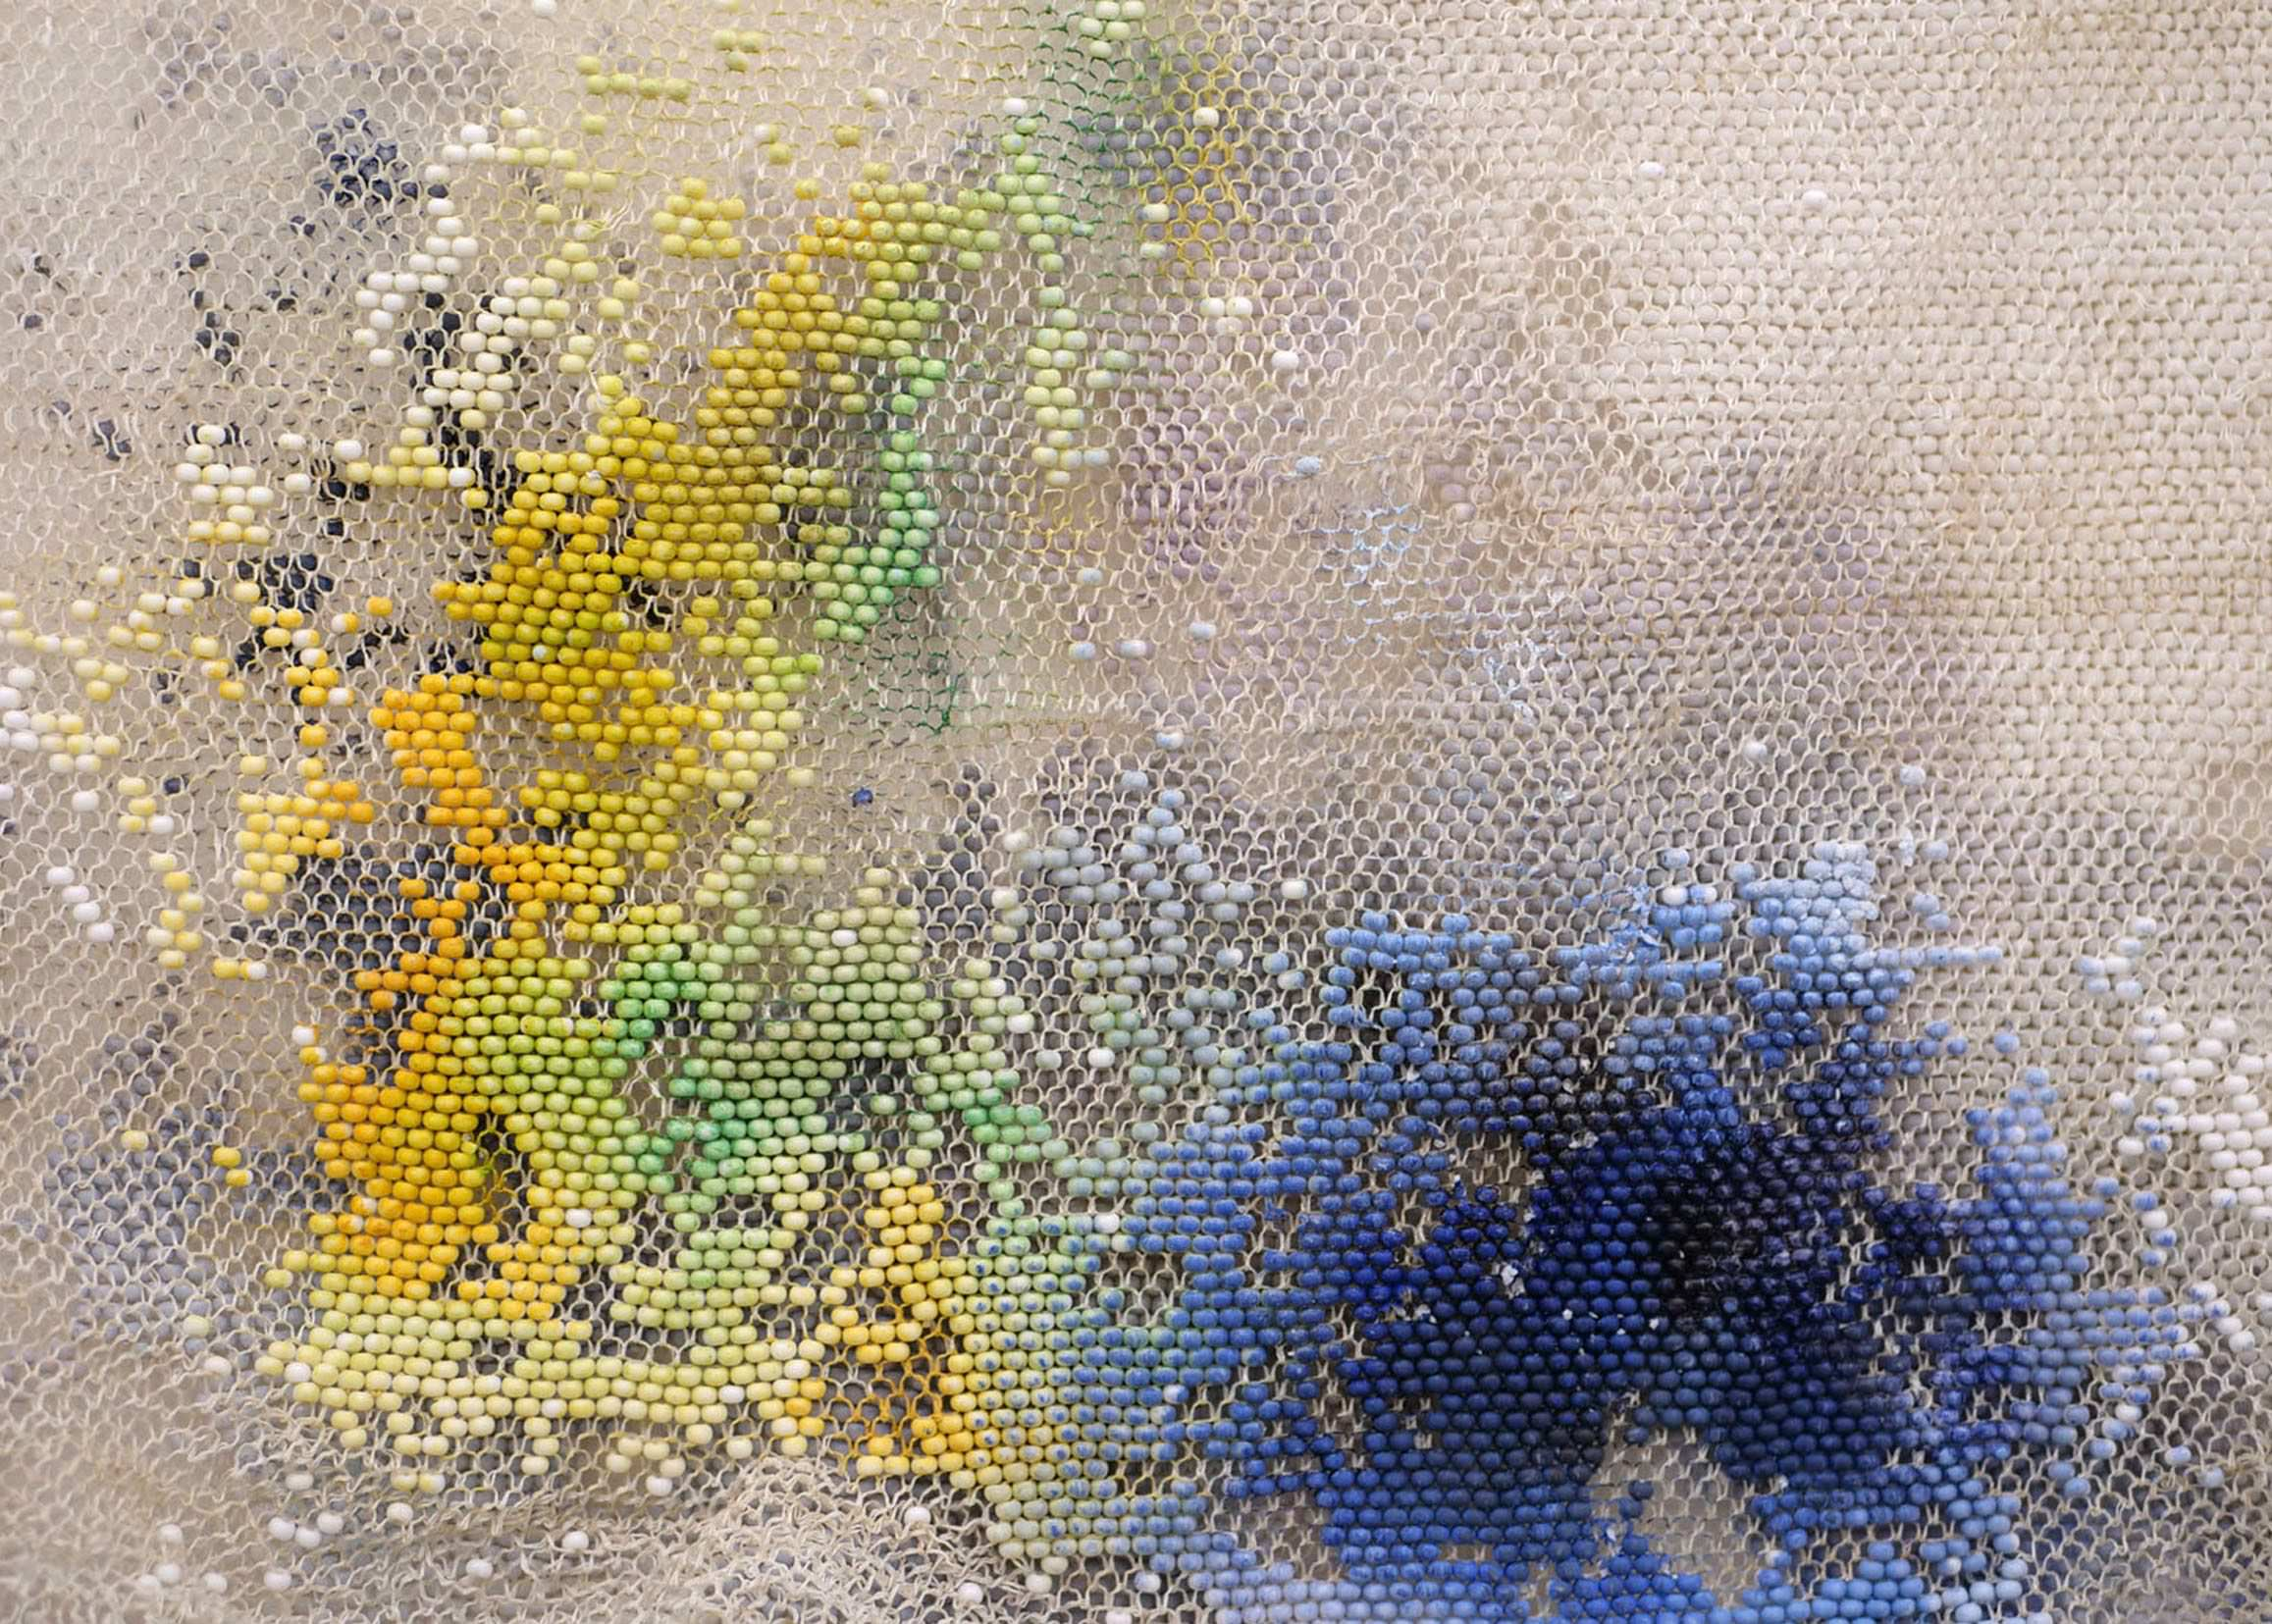 LIZA LOU The Clouds (detail), 2015-2018 site-specific installation of oil paint on woven glass beads and thread on canvas 600 parts, each 35 x 35 cm; Courtesy the artist and Lehmann Maupin, New York, Hong Kong, and Seoul. Photo: Matthew Herrmann